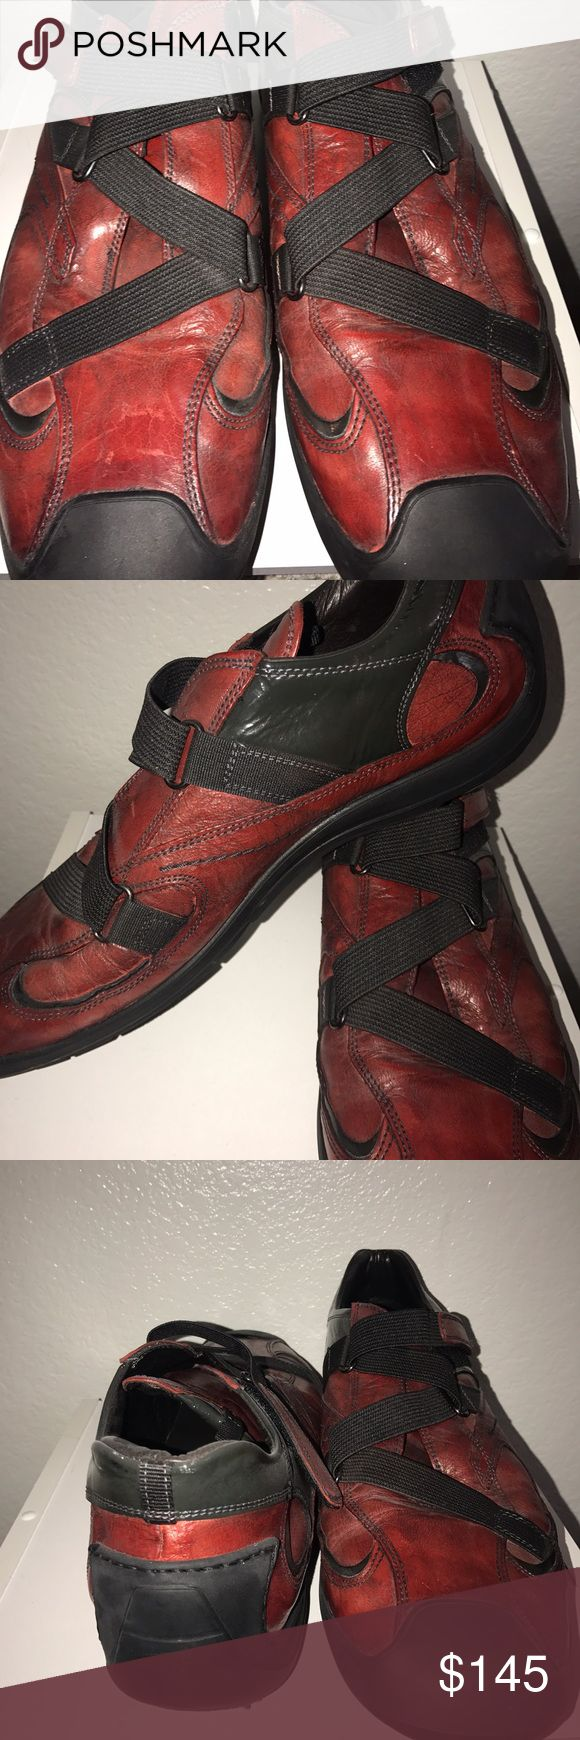 Men's shoes Men's shoes brand new with tags . Bacco Bucci Shoes Sneakers